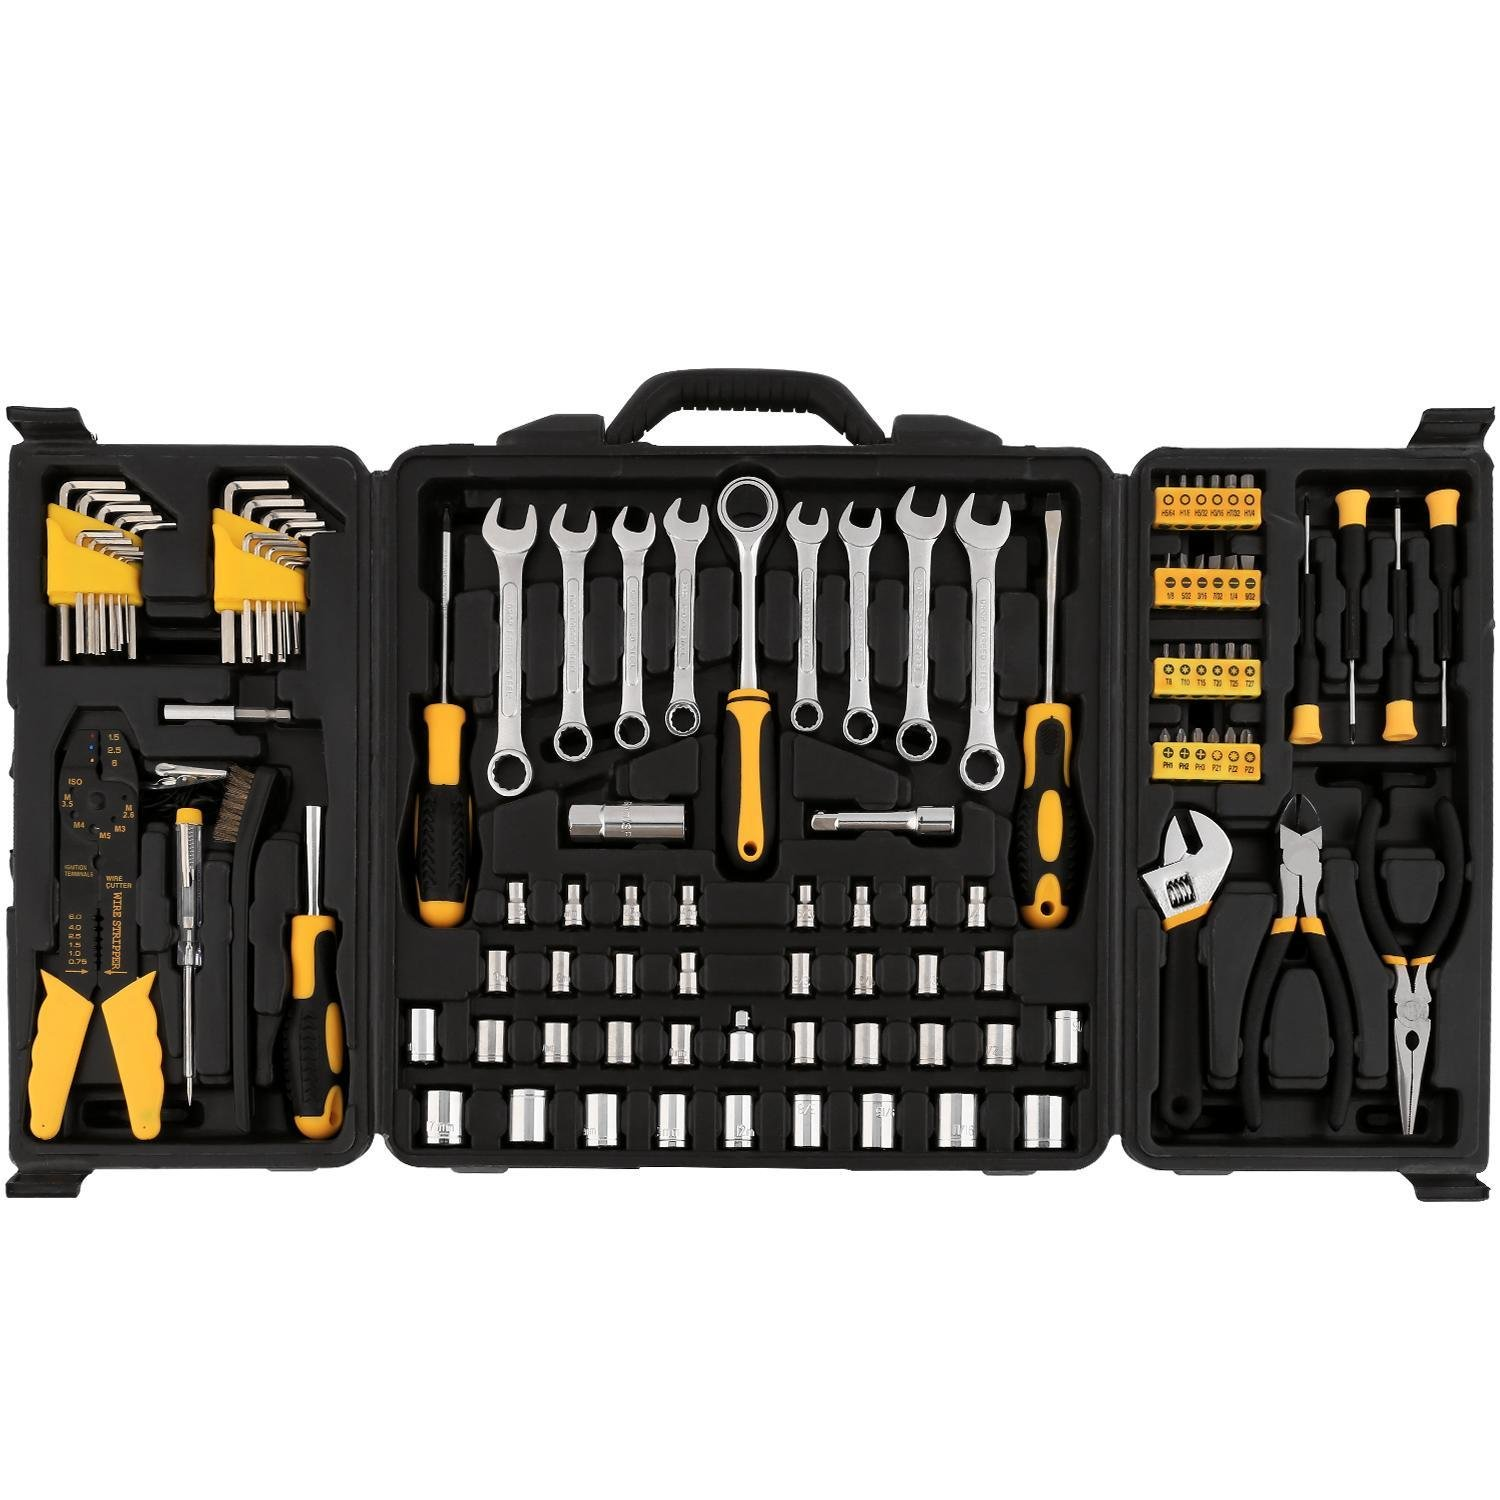 Rapesee 108 Pieces Home Repair Tool Kit - Multi-Function Basic General Household Hand Tool Set for Craftsman Starter Electronics Test Repair Maintenance with Plastic Toolbox Storage Case